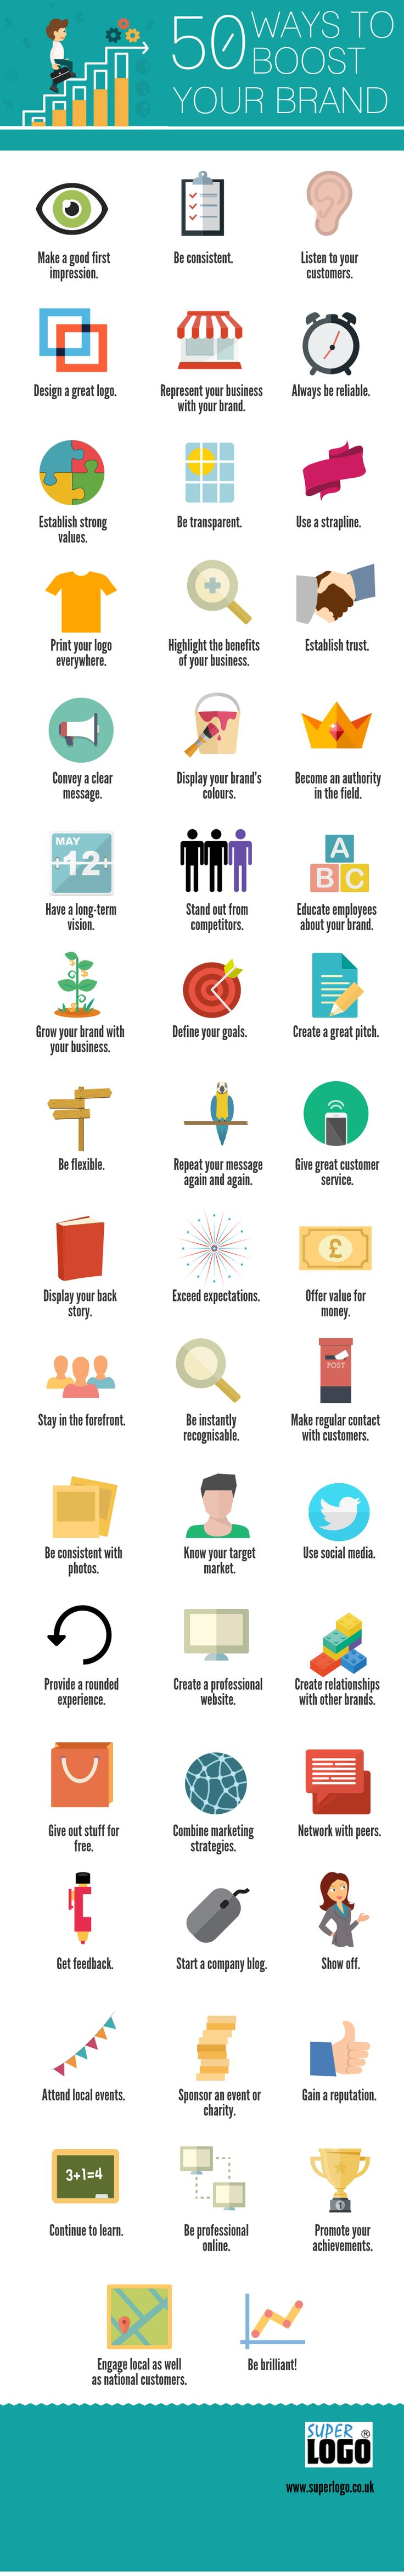 50 Ways to Build Your Brand  Have a big network of executives and HR managers? Introduce us to them and we will pay for your travel. Email me at carlos@recruitingforgood.com